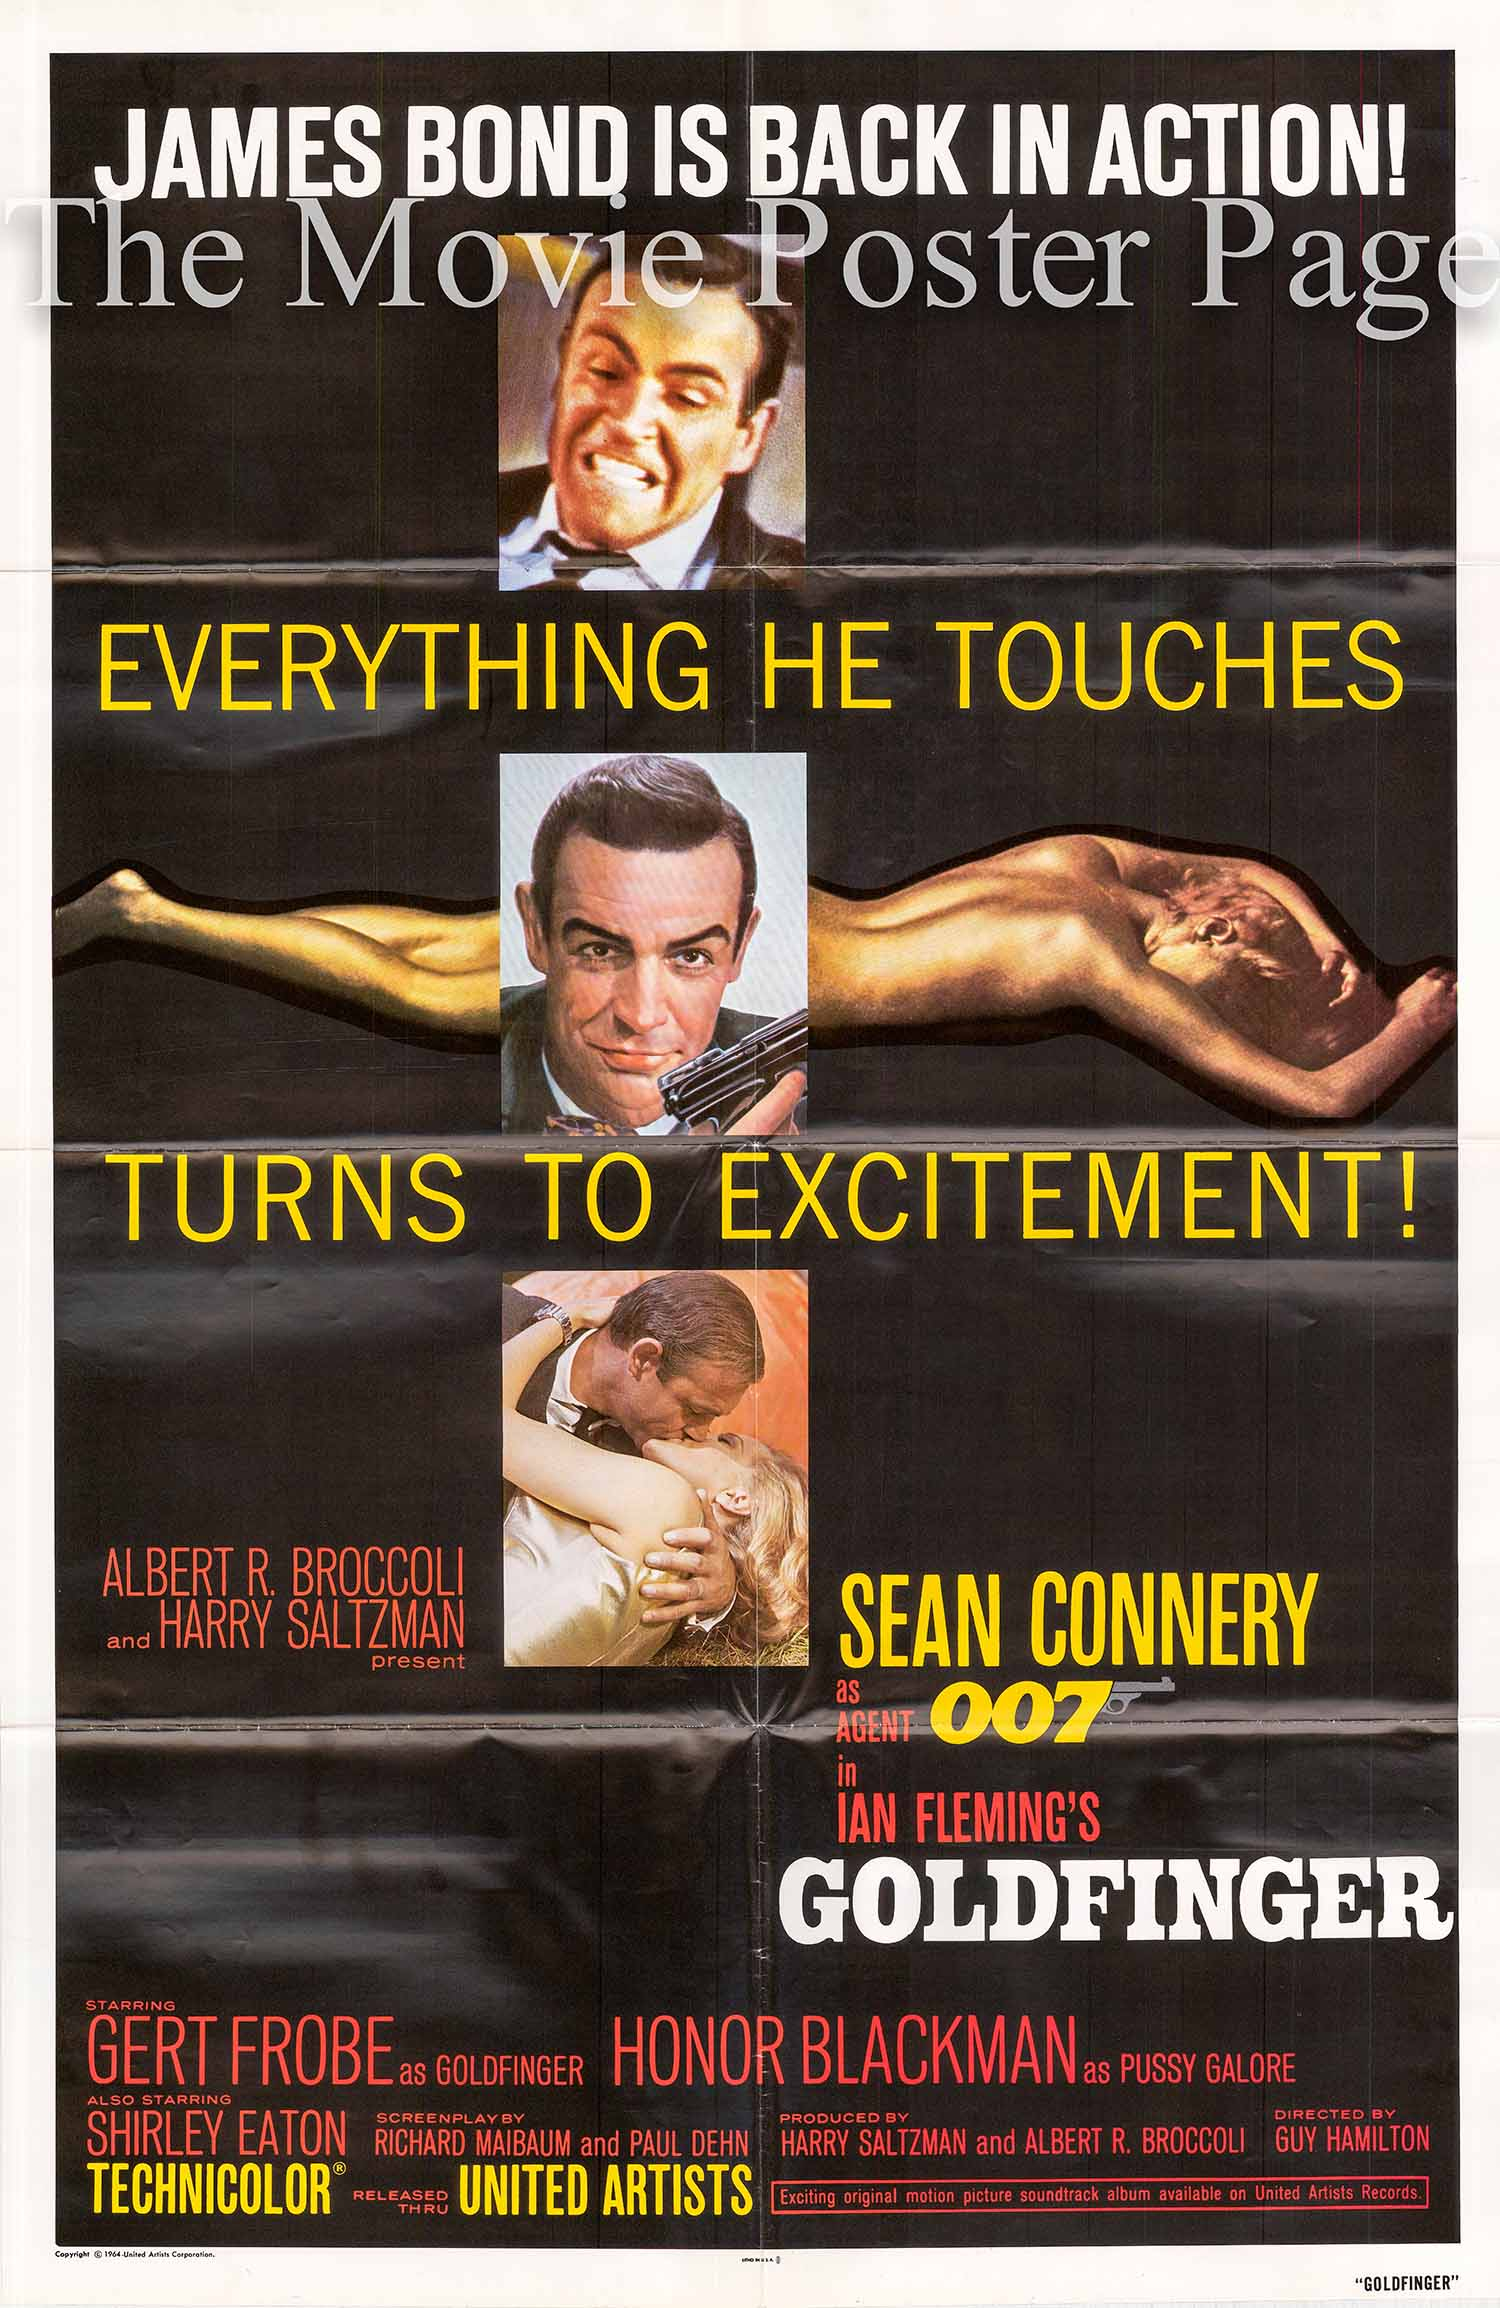 Pictured here is a US promotional poster made in 1980 to promote a rerelease of the 1964 Guy Hamilton film Goldfinger starring Sean Connery as James Bond.